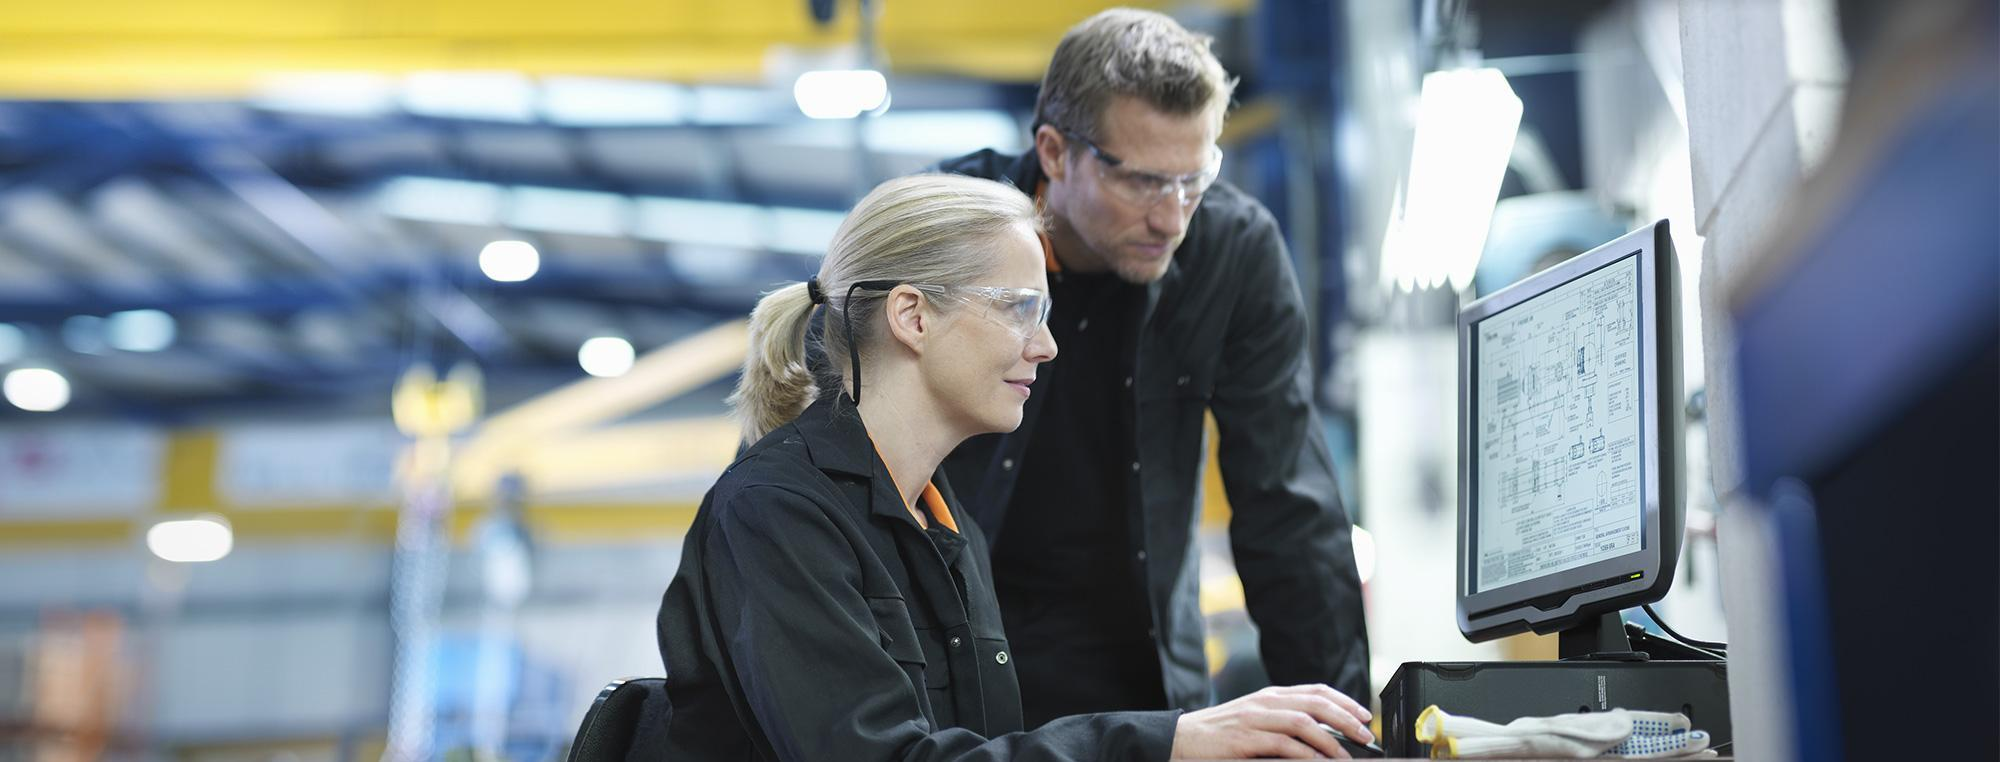 Two manufacturing professionals working on computer on factory floor